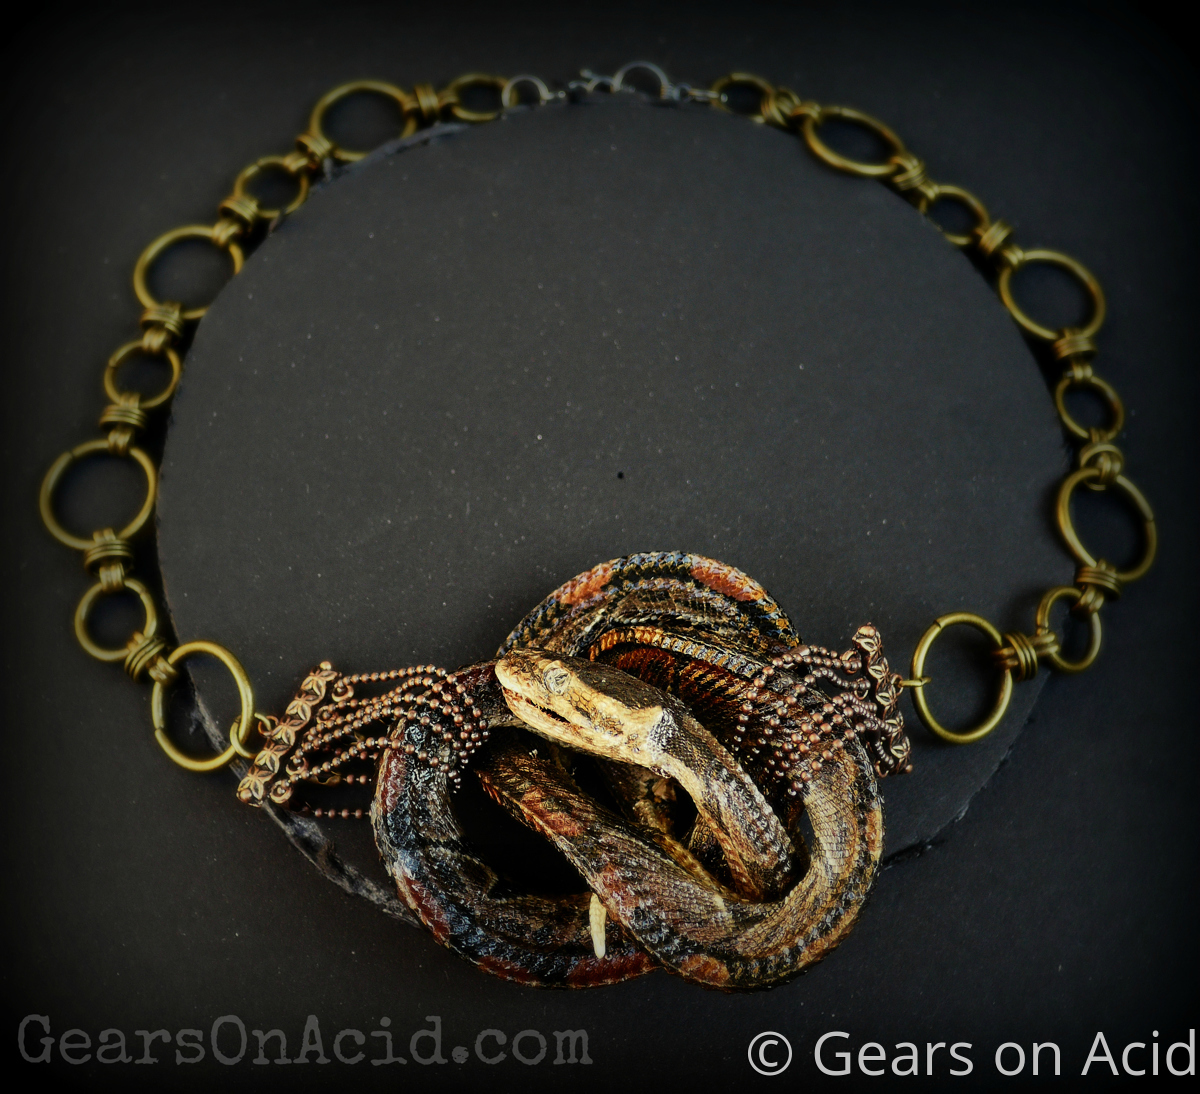 Ball Python Necklace (large view)